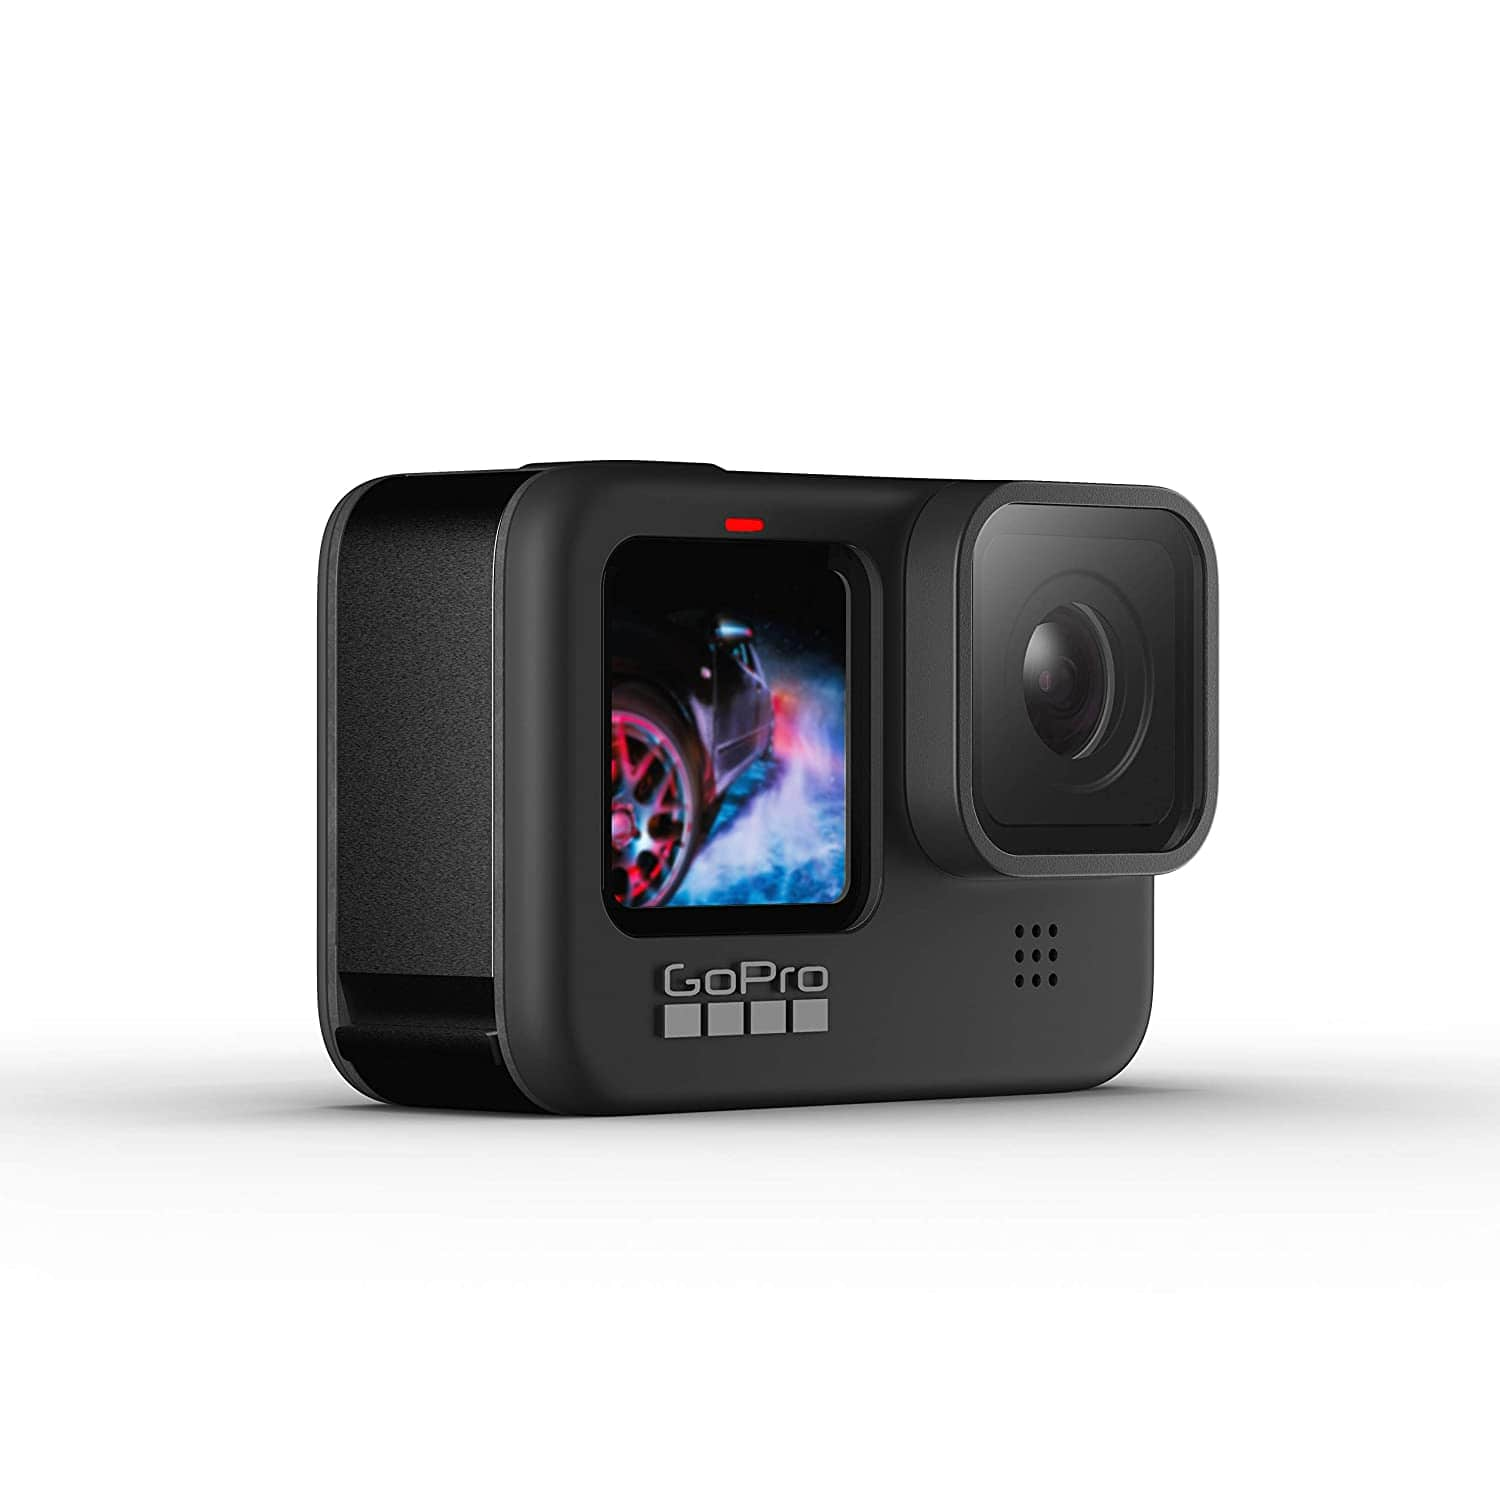 GoPro HERO9 Black Amazon 337.5$ (25% cb amazon card) $337.5